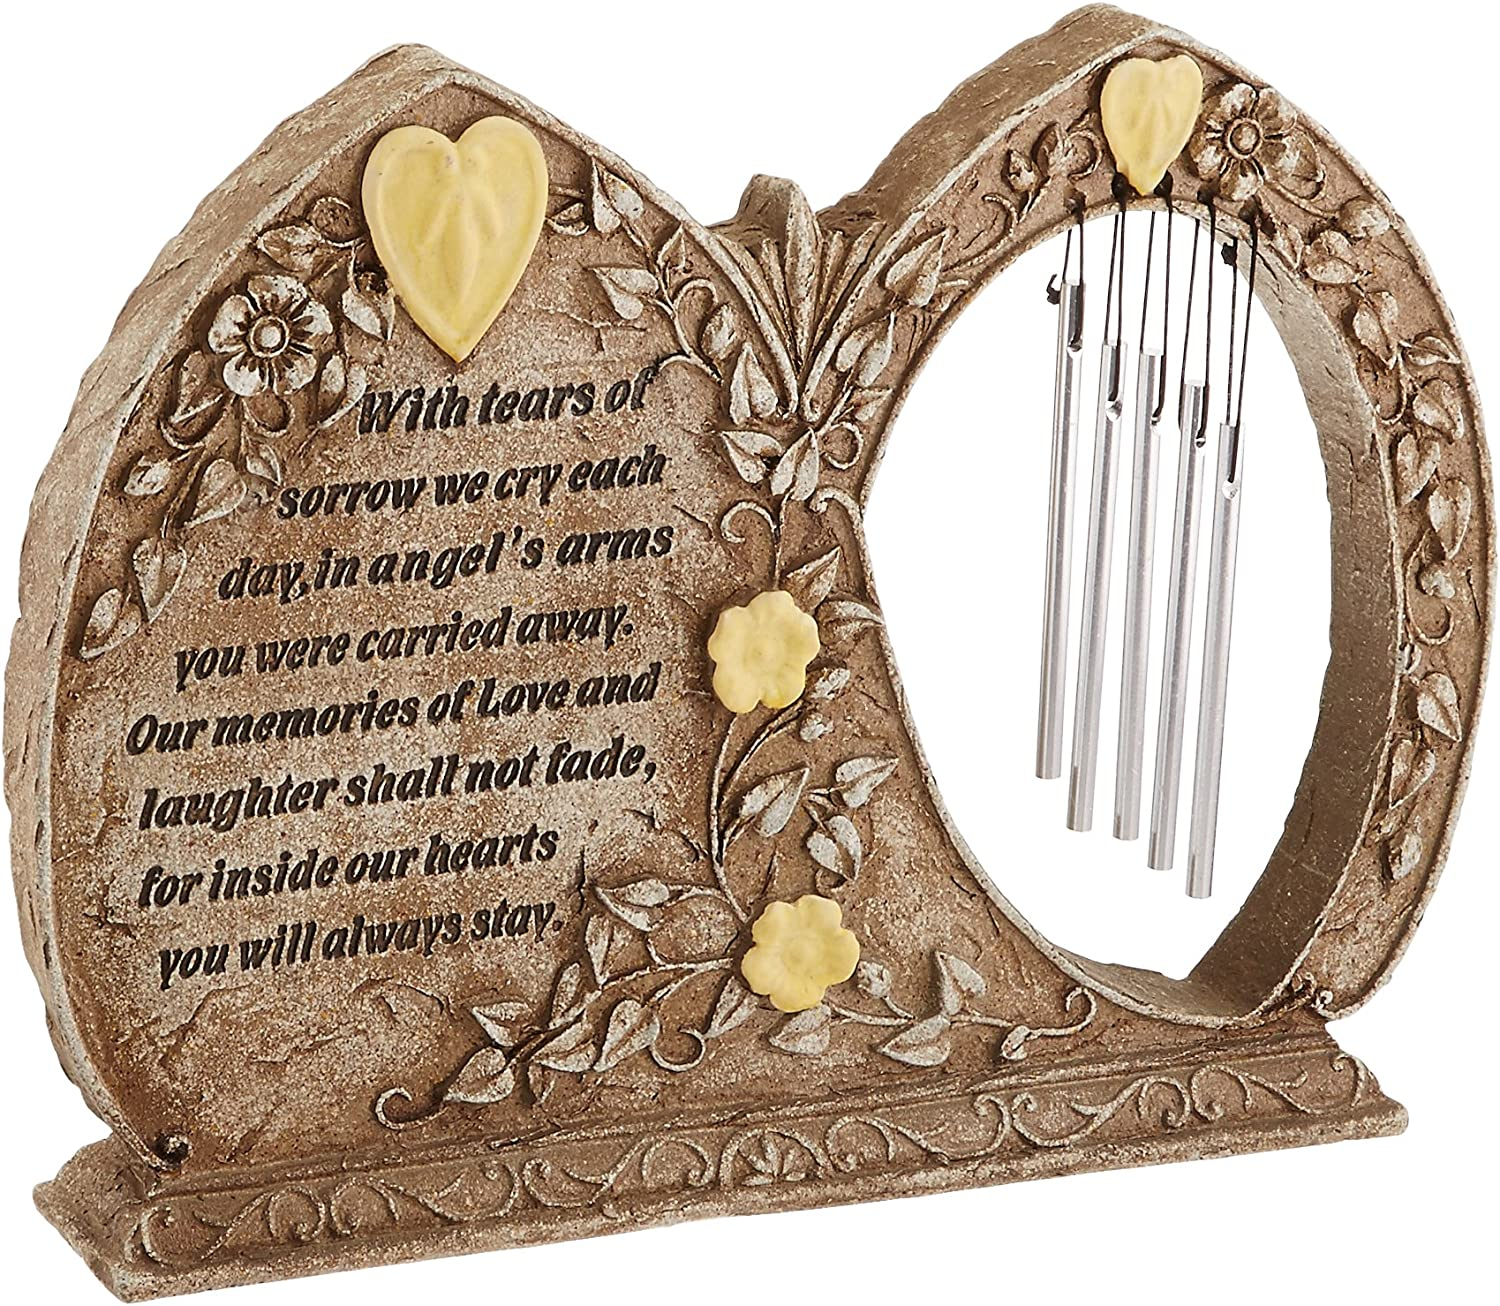 Carson Home Accents Peaceful Reflections Garden Chime, 9.5-Inch High, Memorial/Glow in The Garden